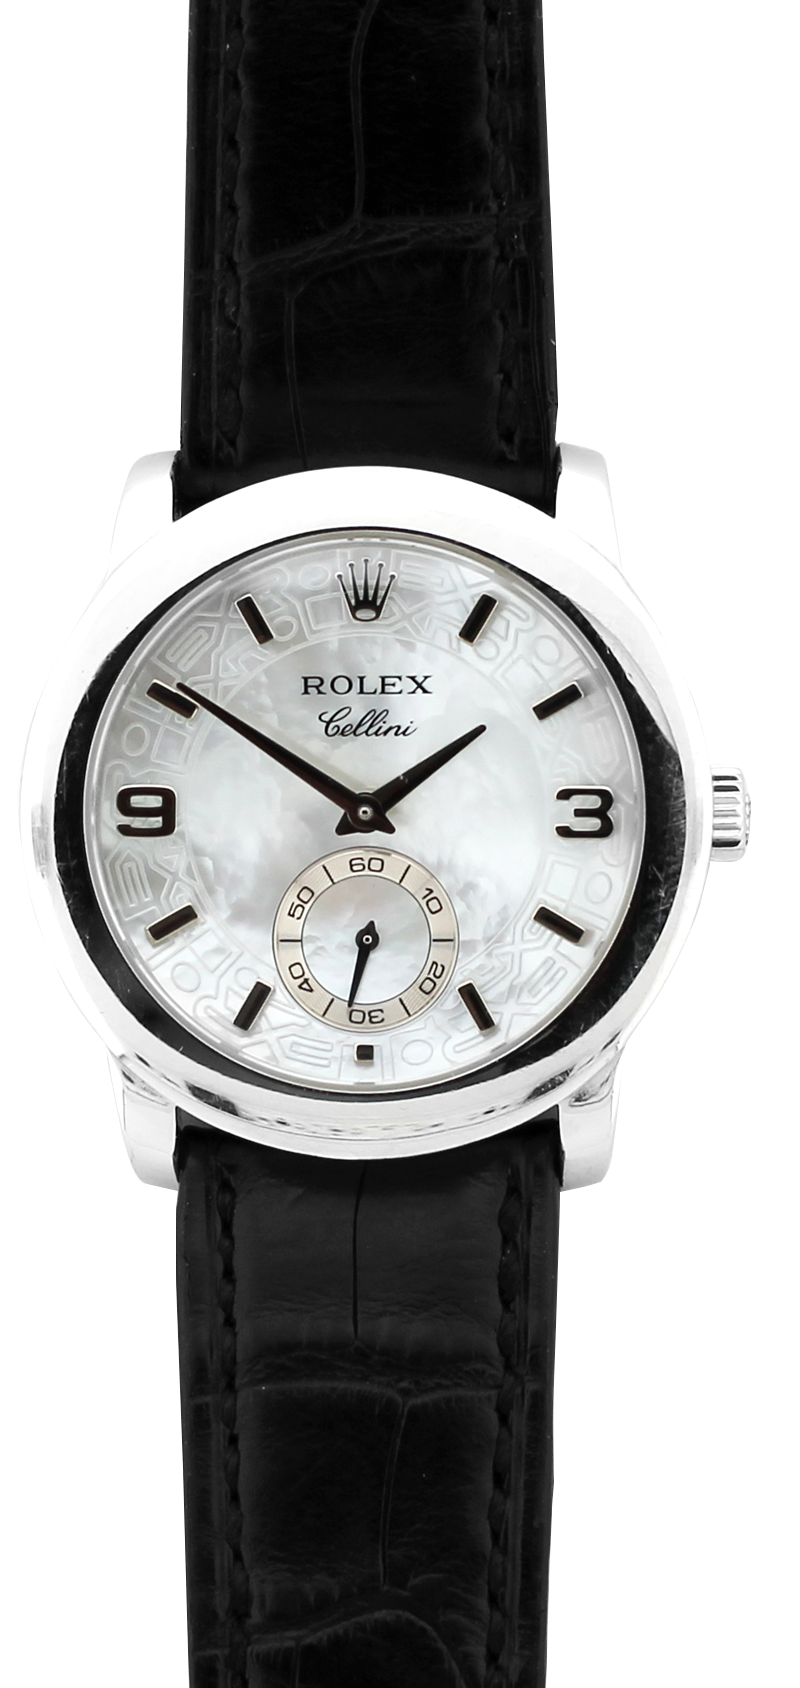 Rolex Platinum Cellini Cellinium White Mother Of Pearl Dial 5240 with Box & Booklets